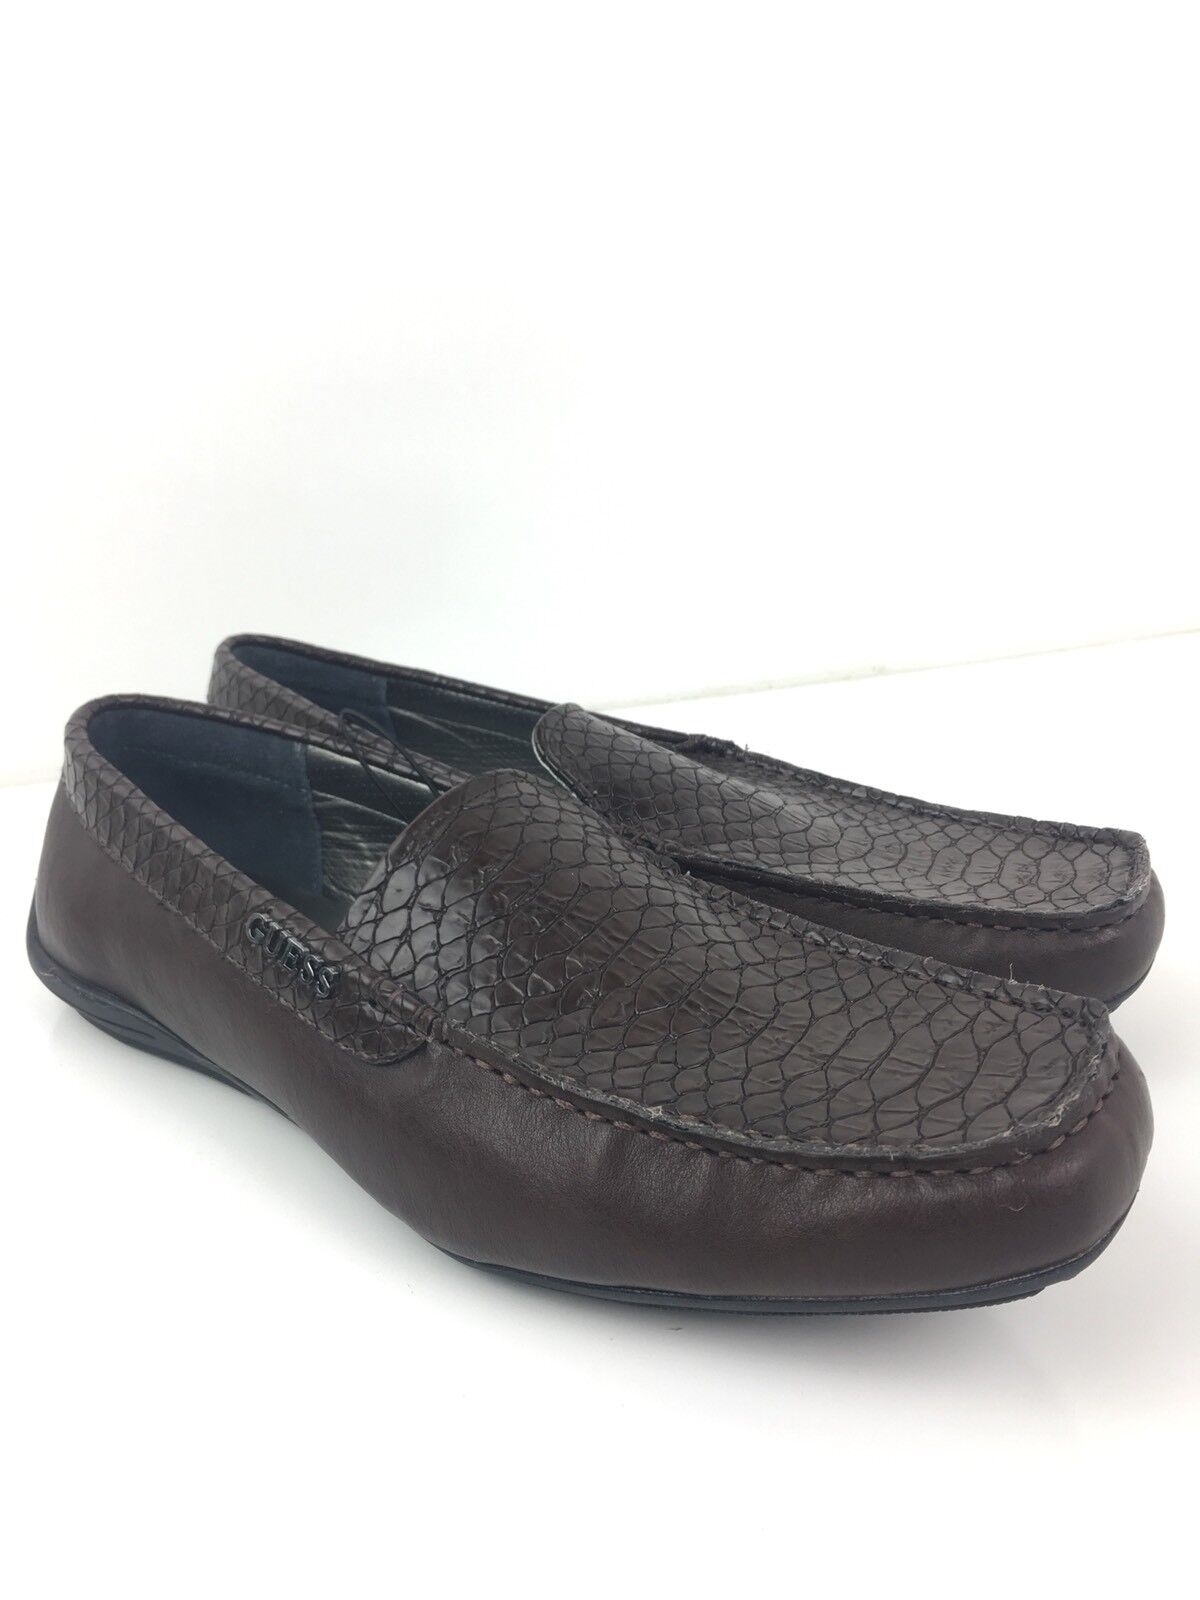 Guess Mens 10M Dark braun Snakeskin Texturot Leather Slip On Clog schuhe- NWOB-A5